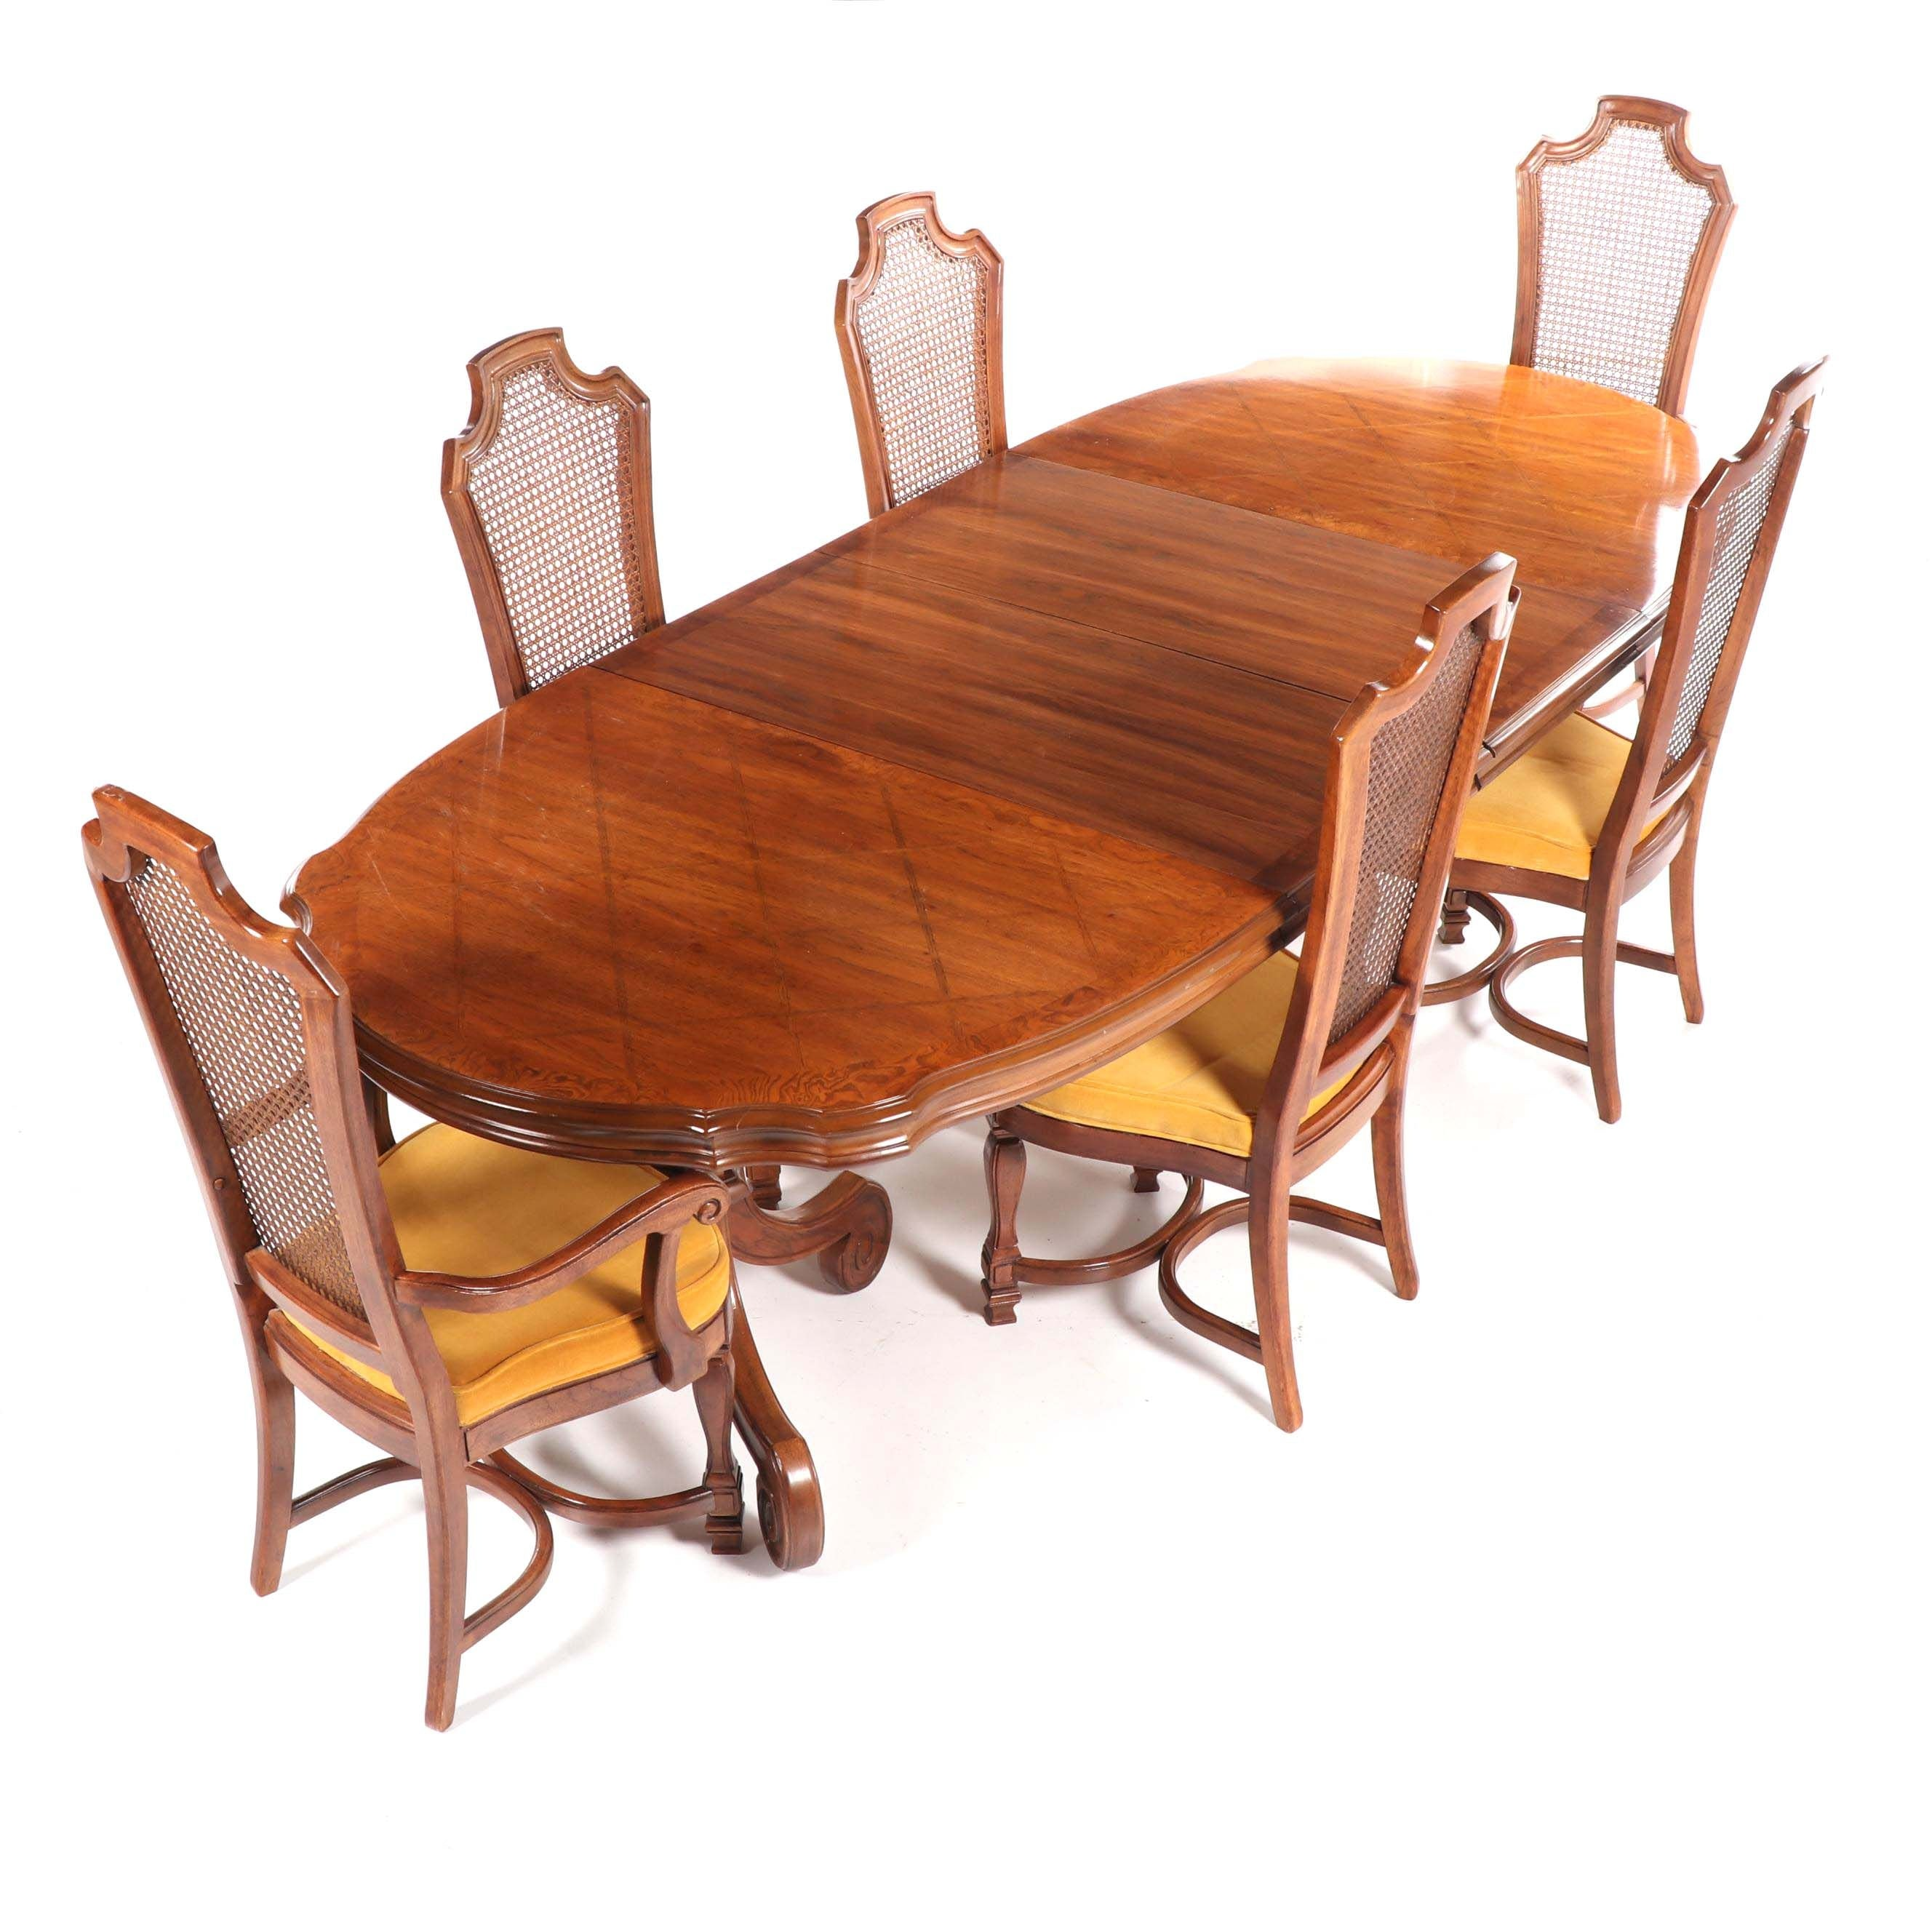 Spanish Revival Style Walnut Dining Set by Thomasville, Late 20th Century